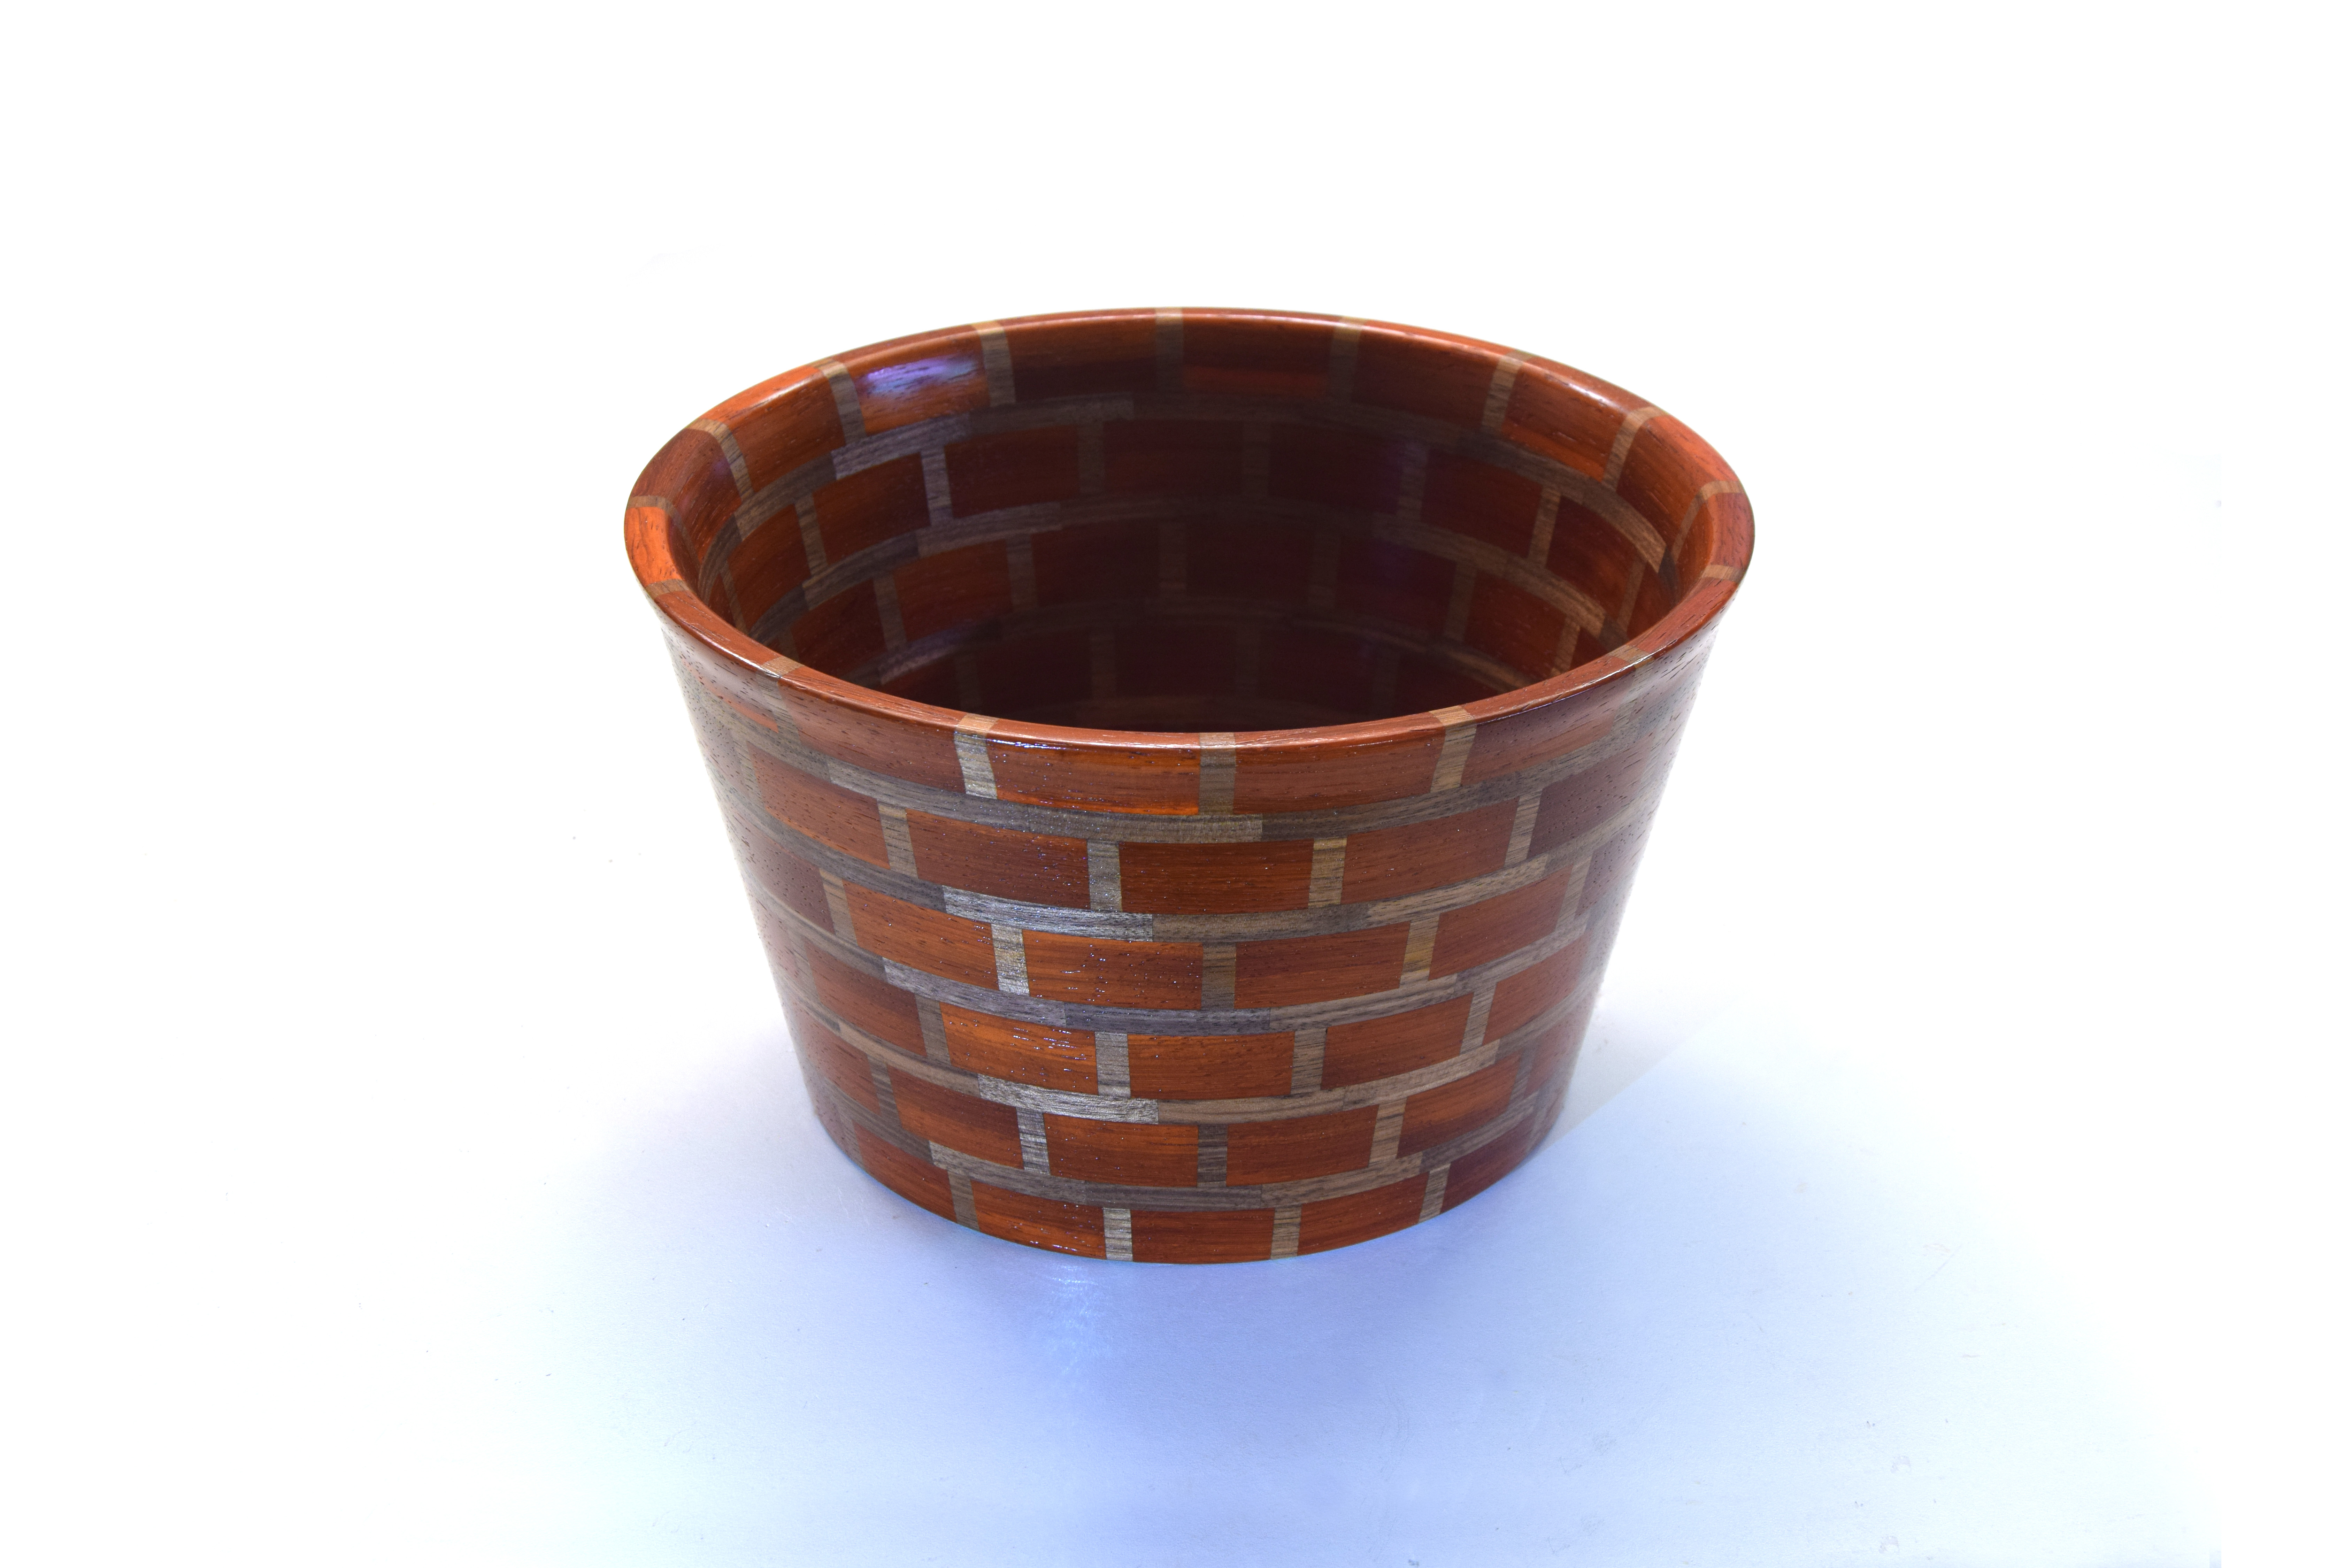 Picture of Brick and Mortar Bowl